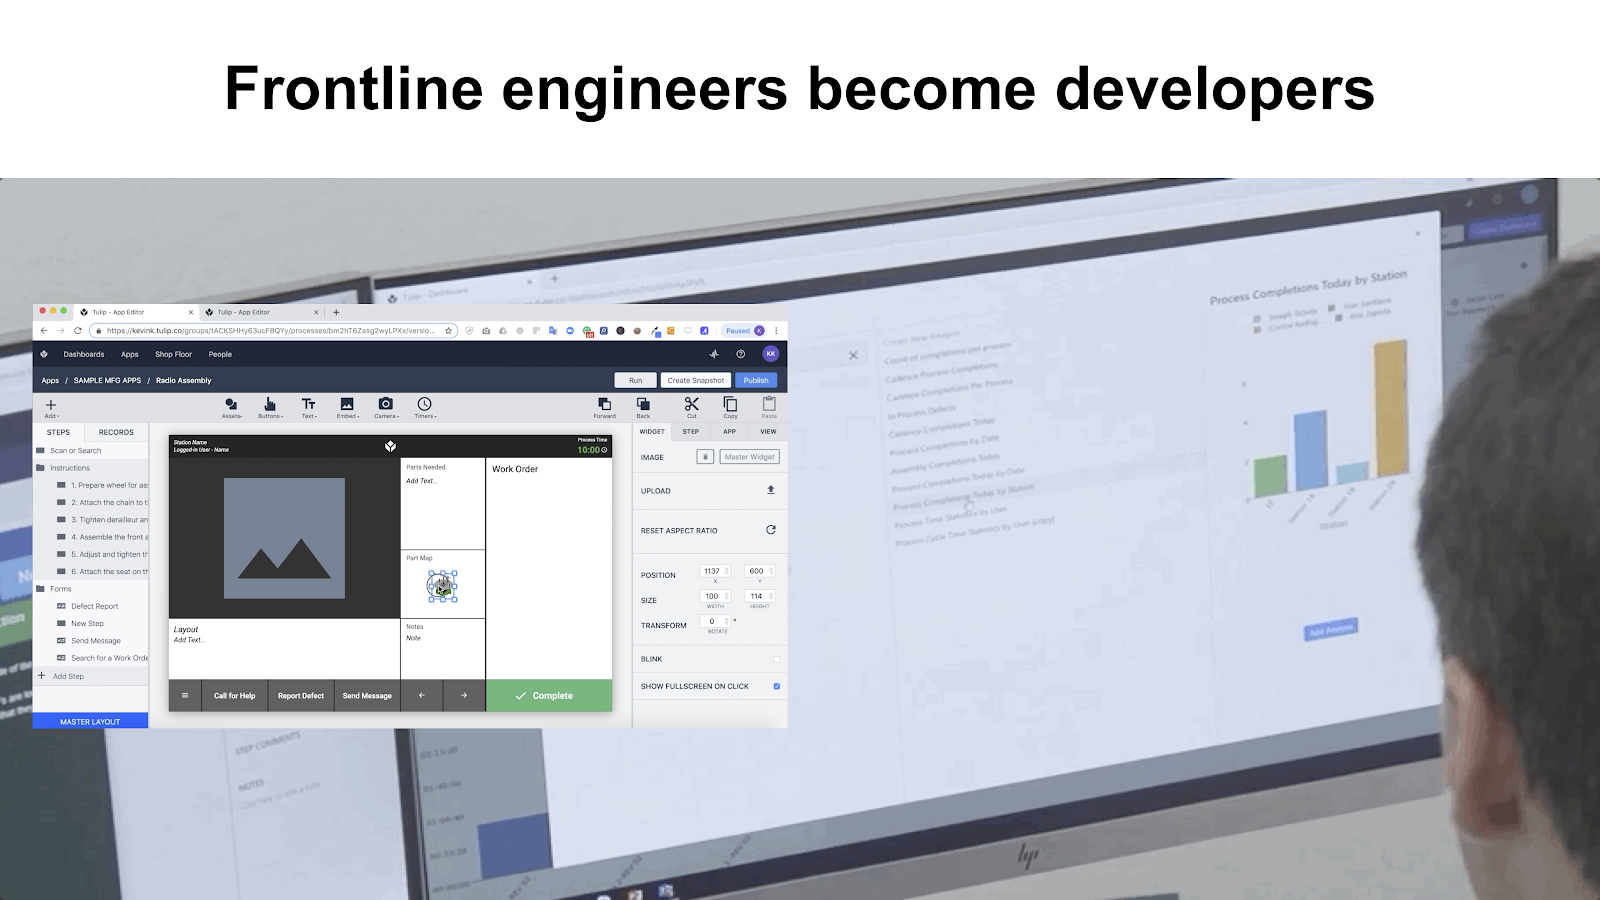 image of front line engineer using a no code platform